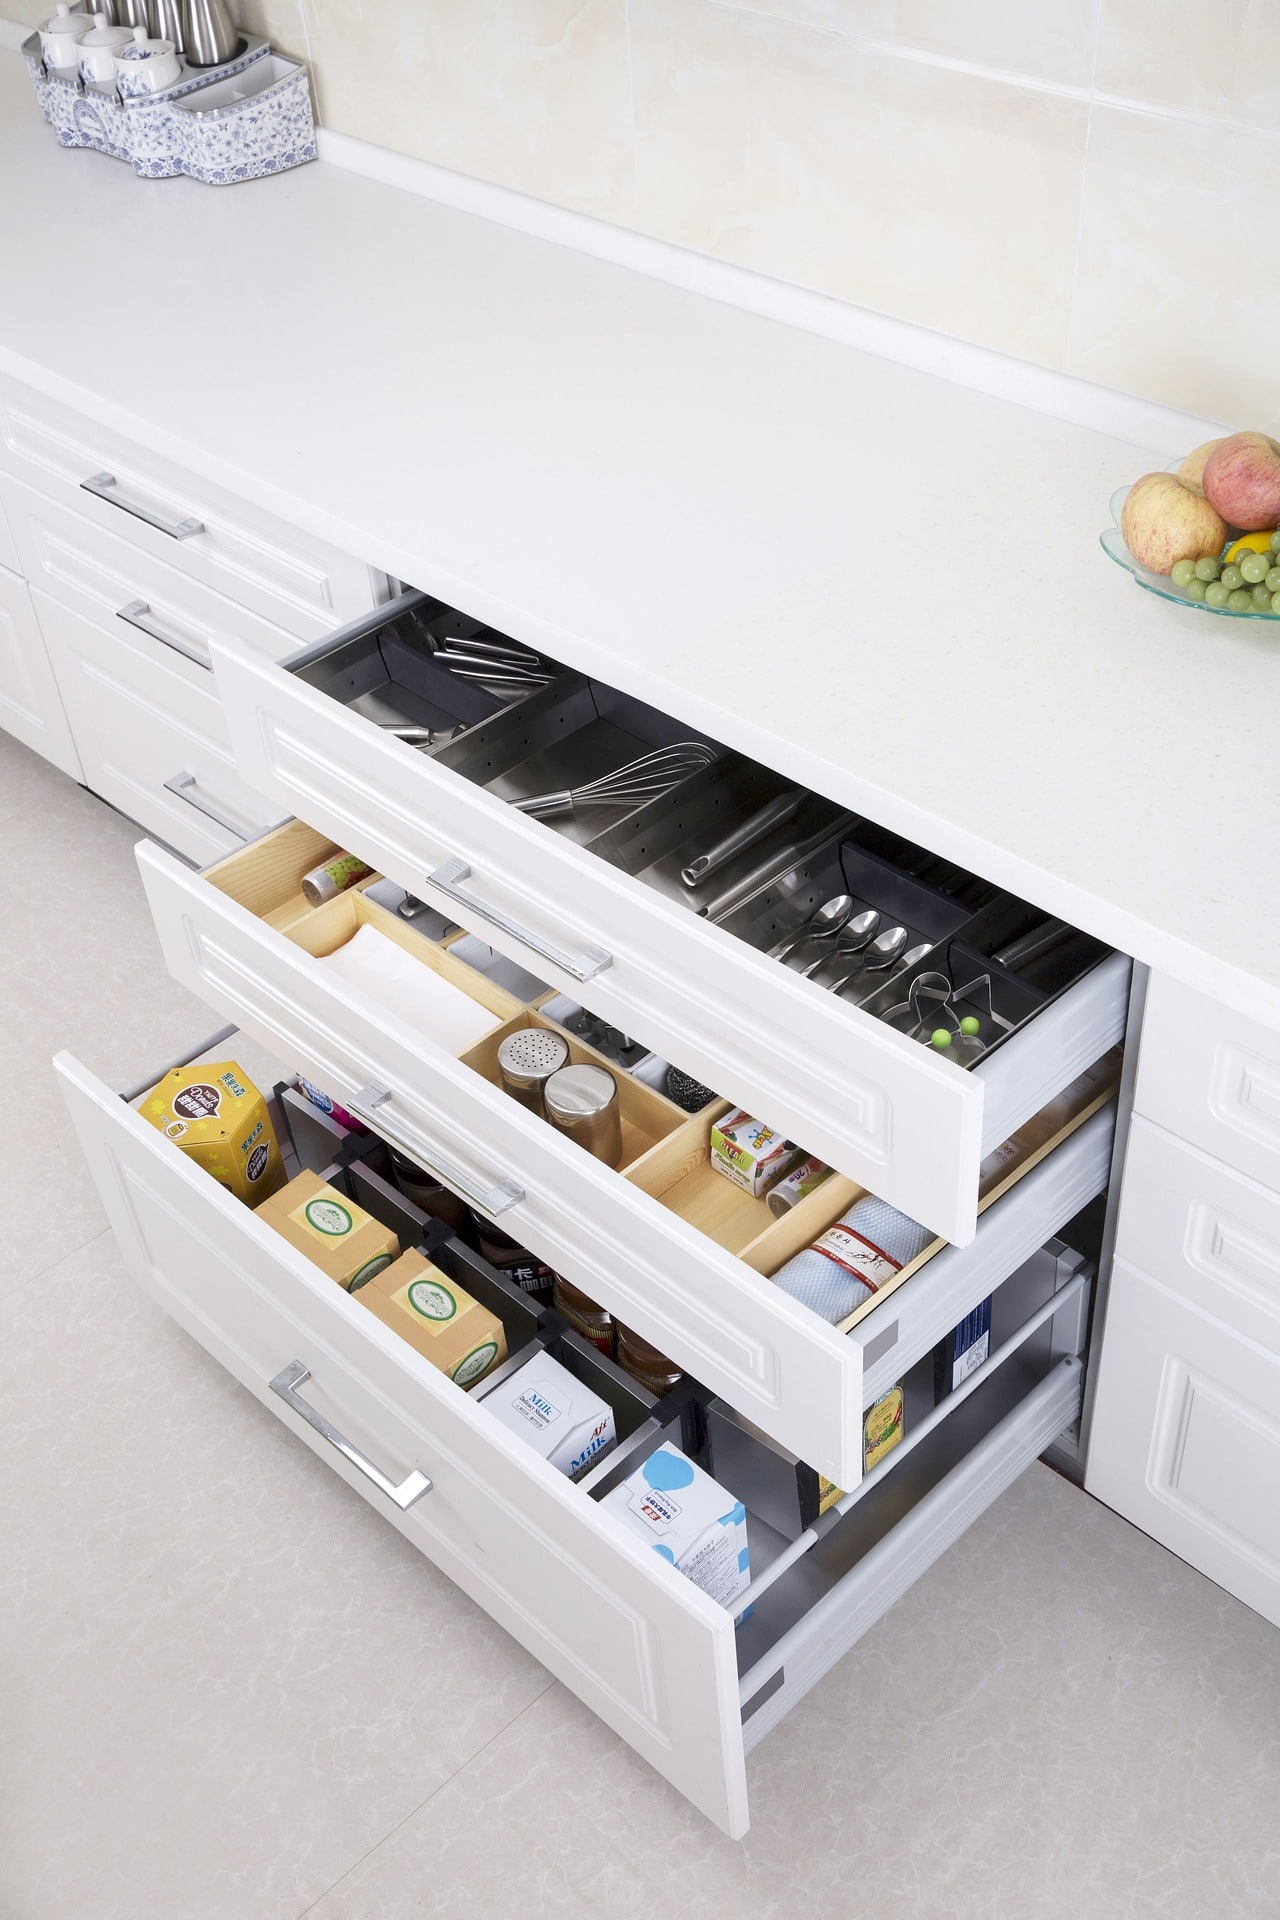 White Drawers filled with Kitchen Utensils.